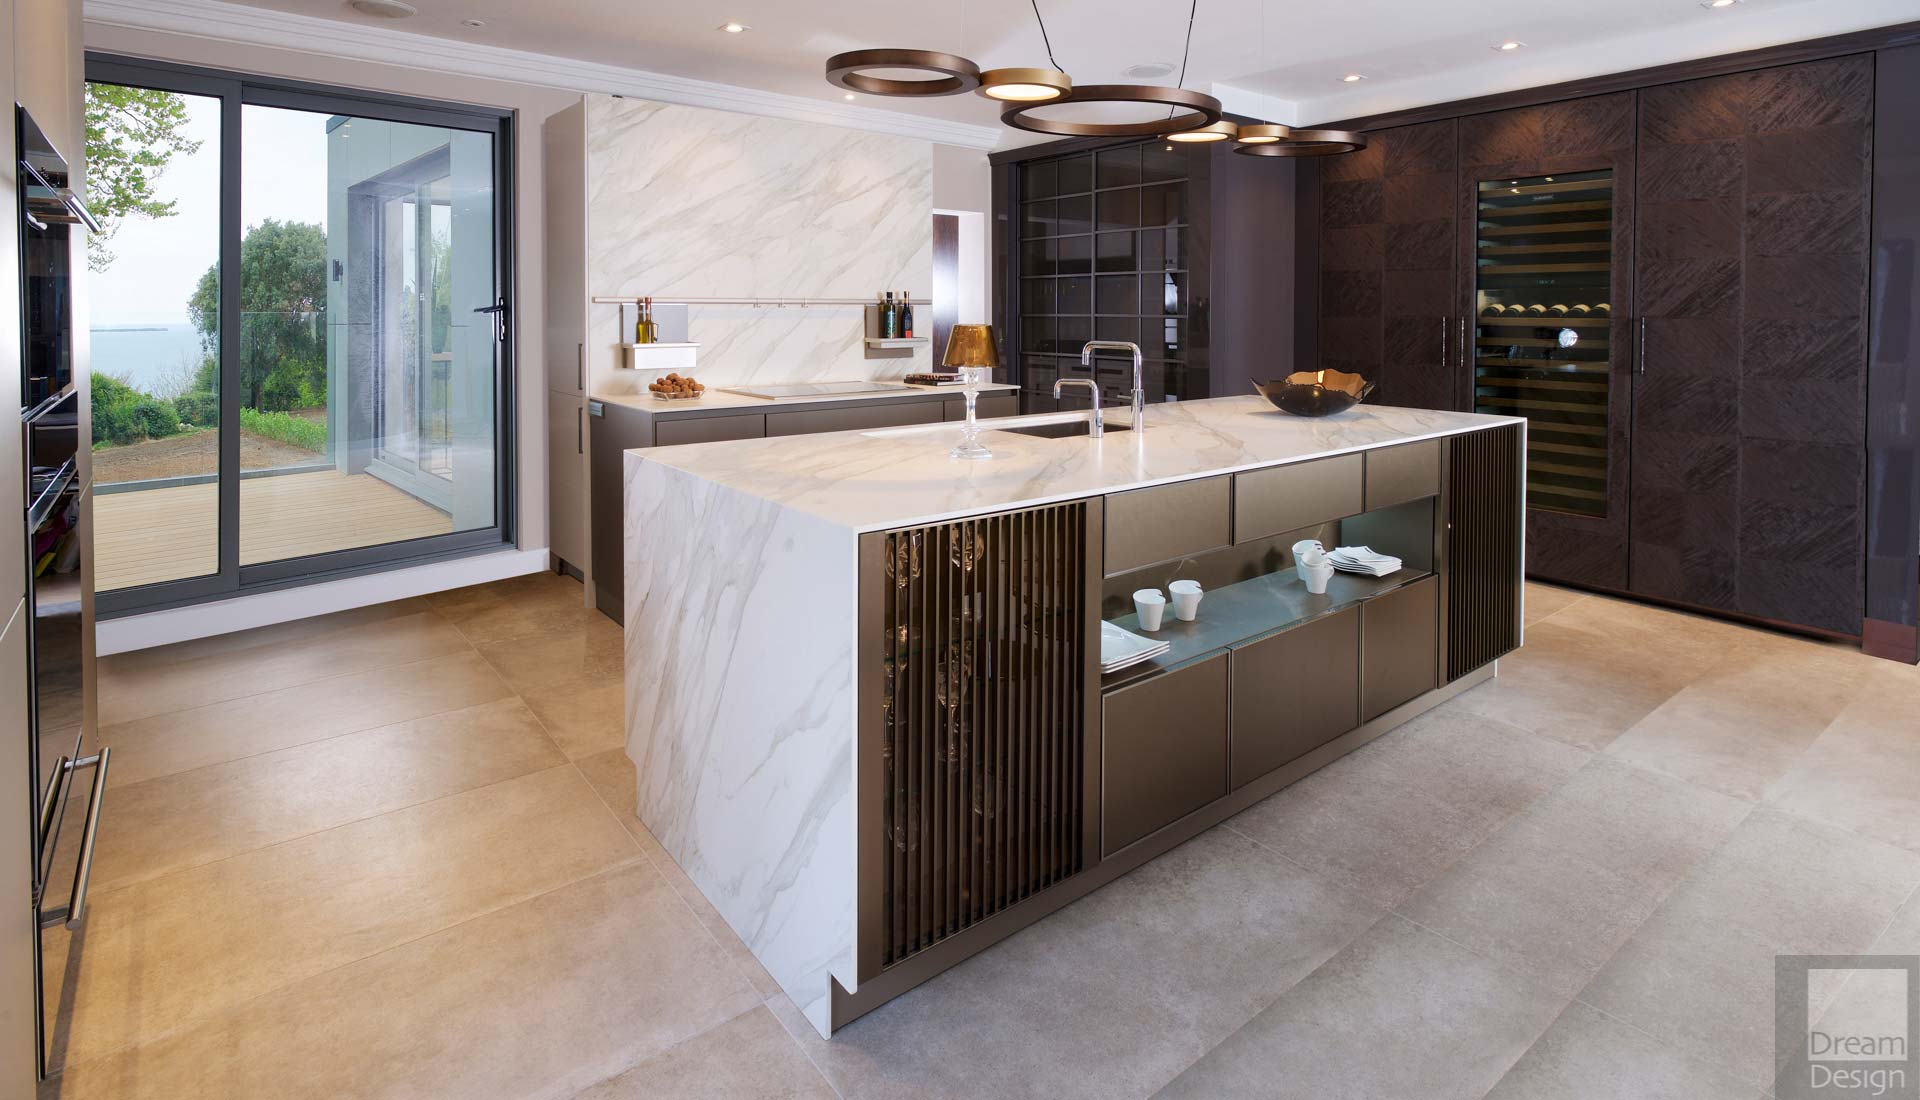 Kitchen Design Soho Nyc Soho Kitchen By Siematic And Andrew James Dream Design